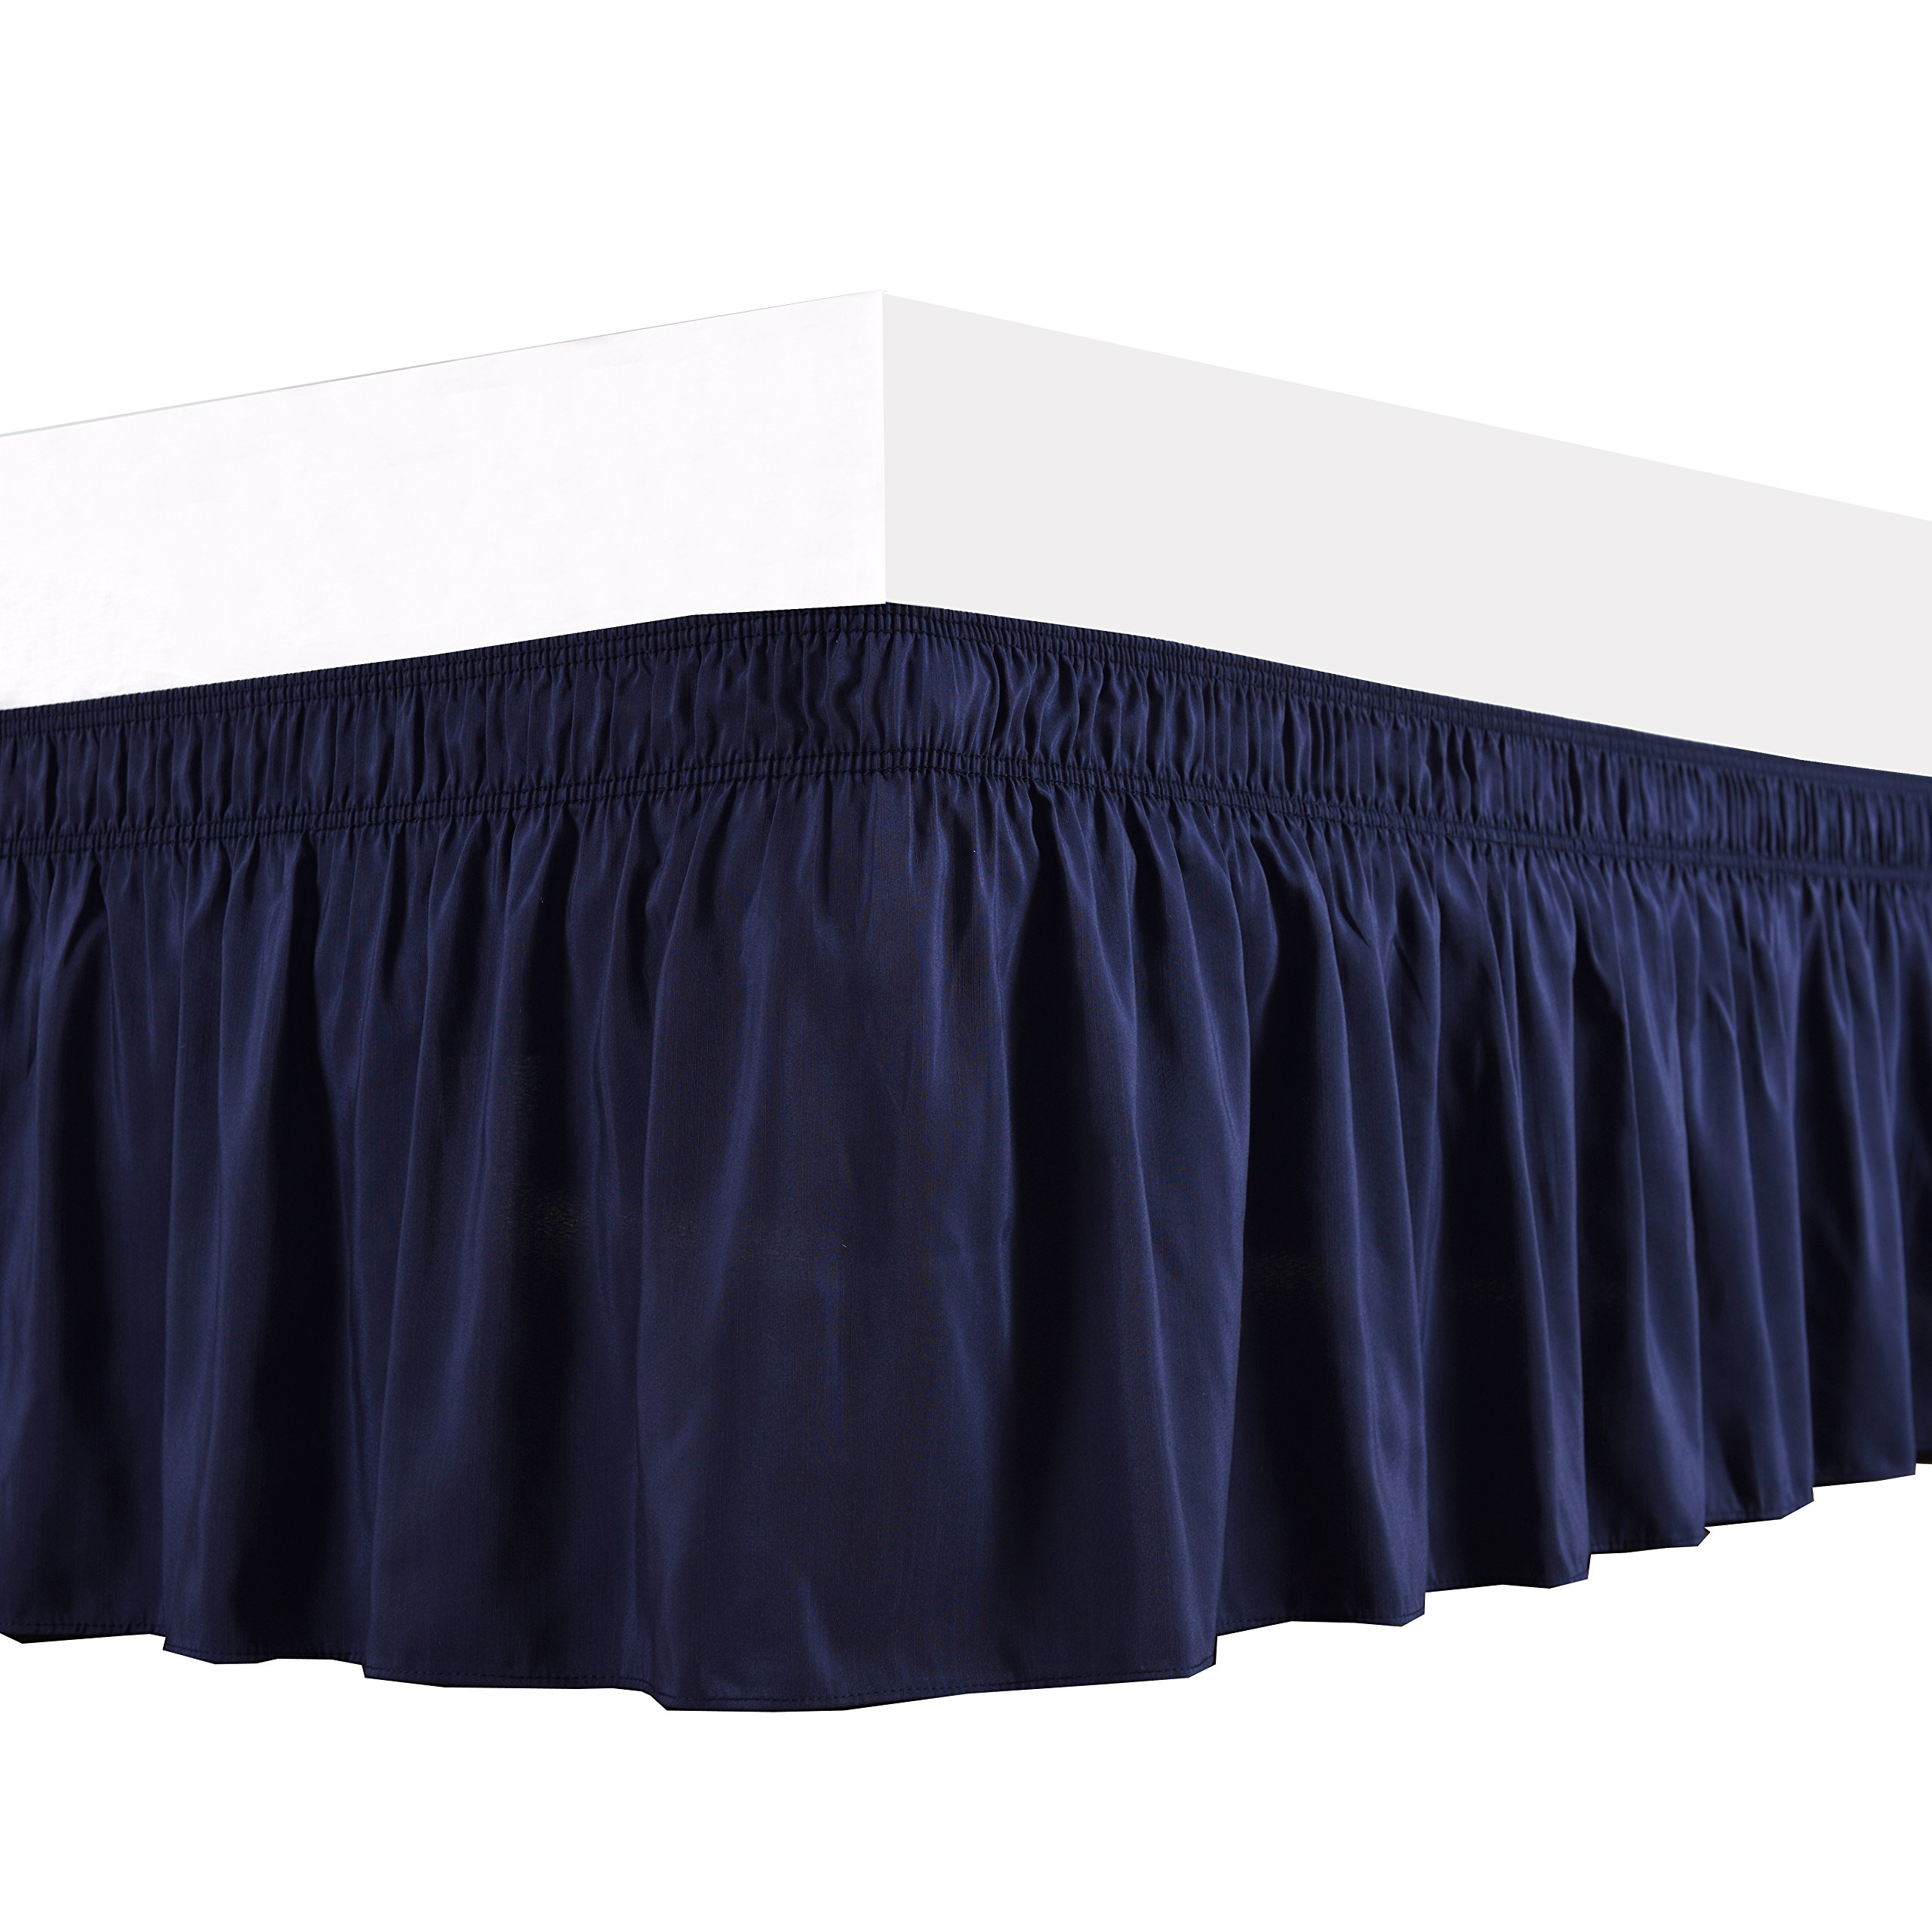 Biscaynebay Wrap Around Bed Skirt, Elastic Dust Ruffle, Easy Fit Wrinkle and Fade Resistant Solid Color Fabric, King Size, Navy